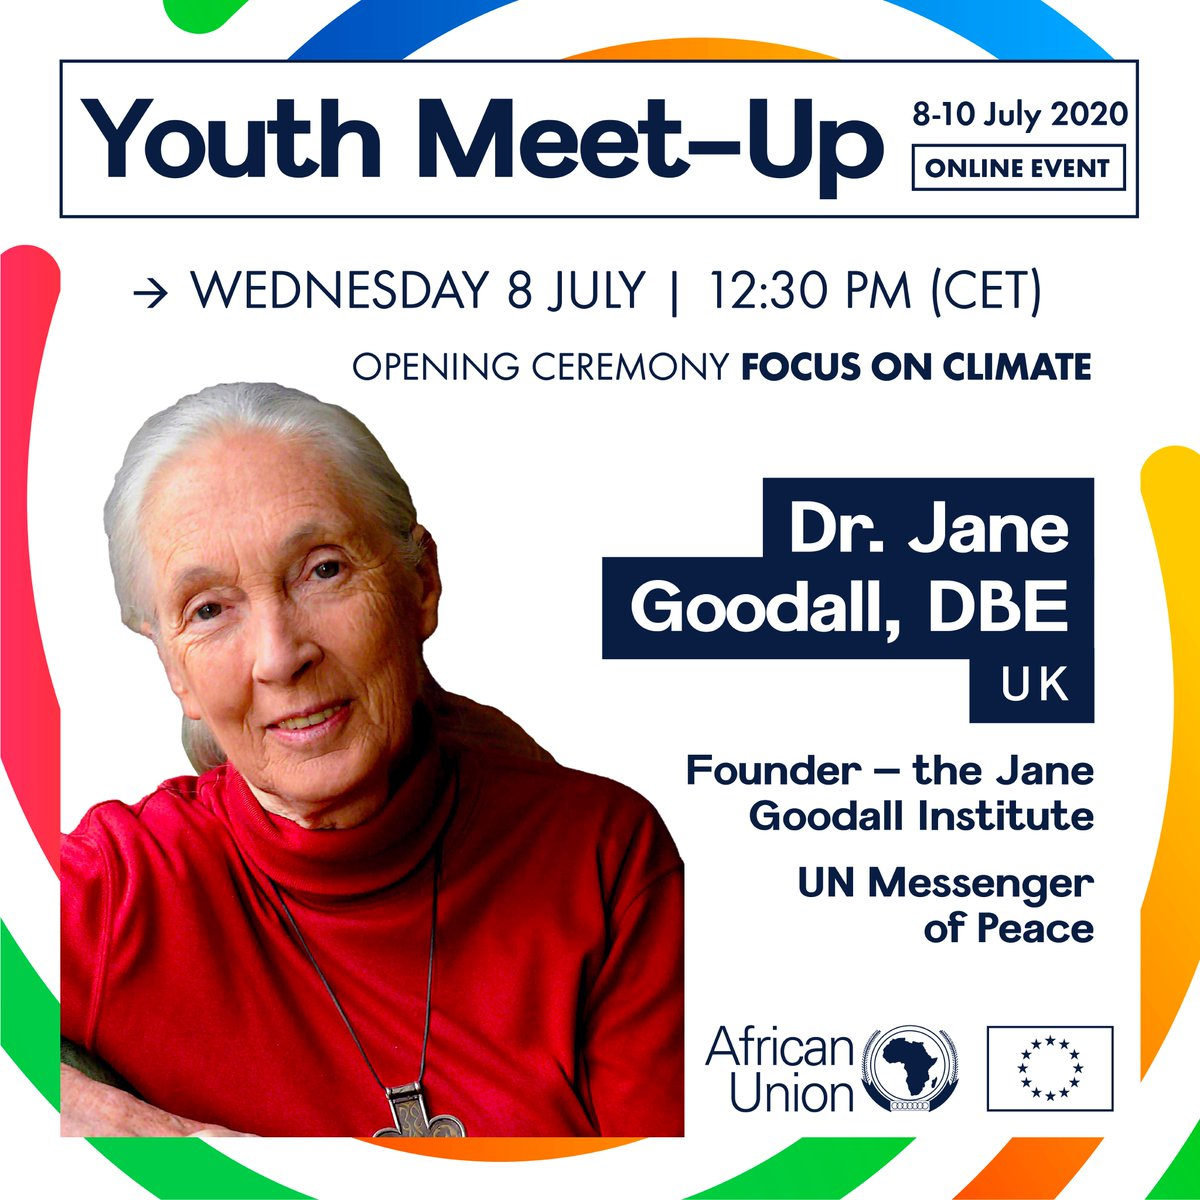 It is our honour that @JaneGoodallInst is speaking at the #AUEUMeetUp Focus on #Climate Opening Ceremony.  A global #conservation leader, her courage & tenacity will surely inspire all #AU #EU #youth to design a #greener world.  Mark your calendar: 8 July 12:30 PM #environmentpic.twitter.com/xTjoU9KJjp